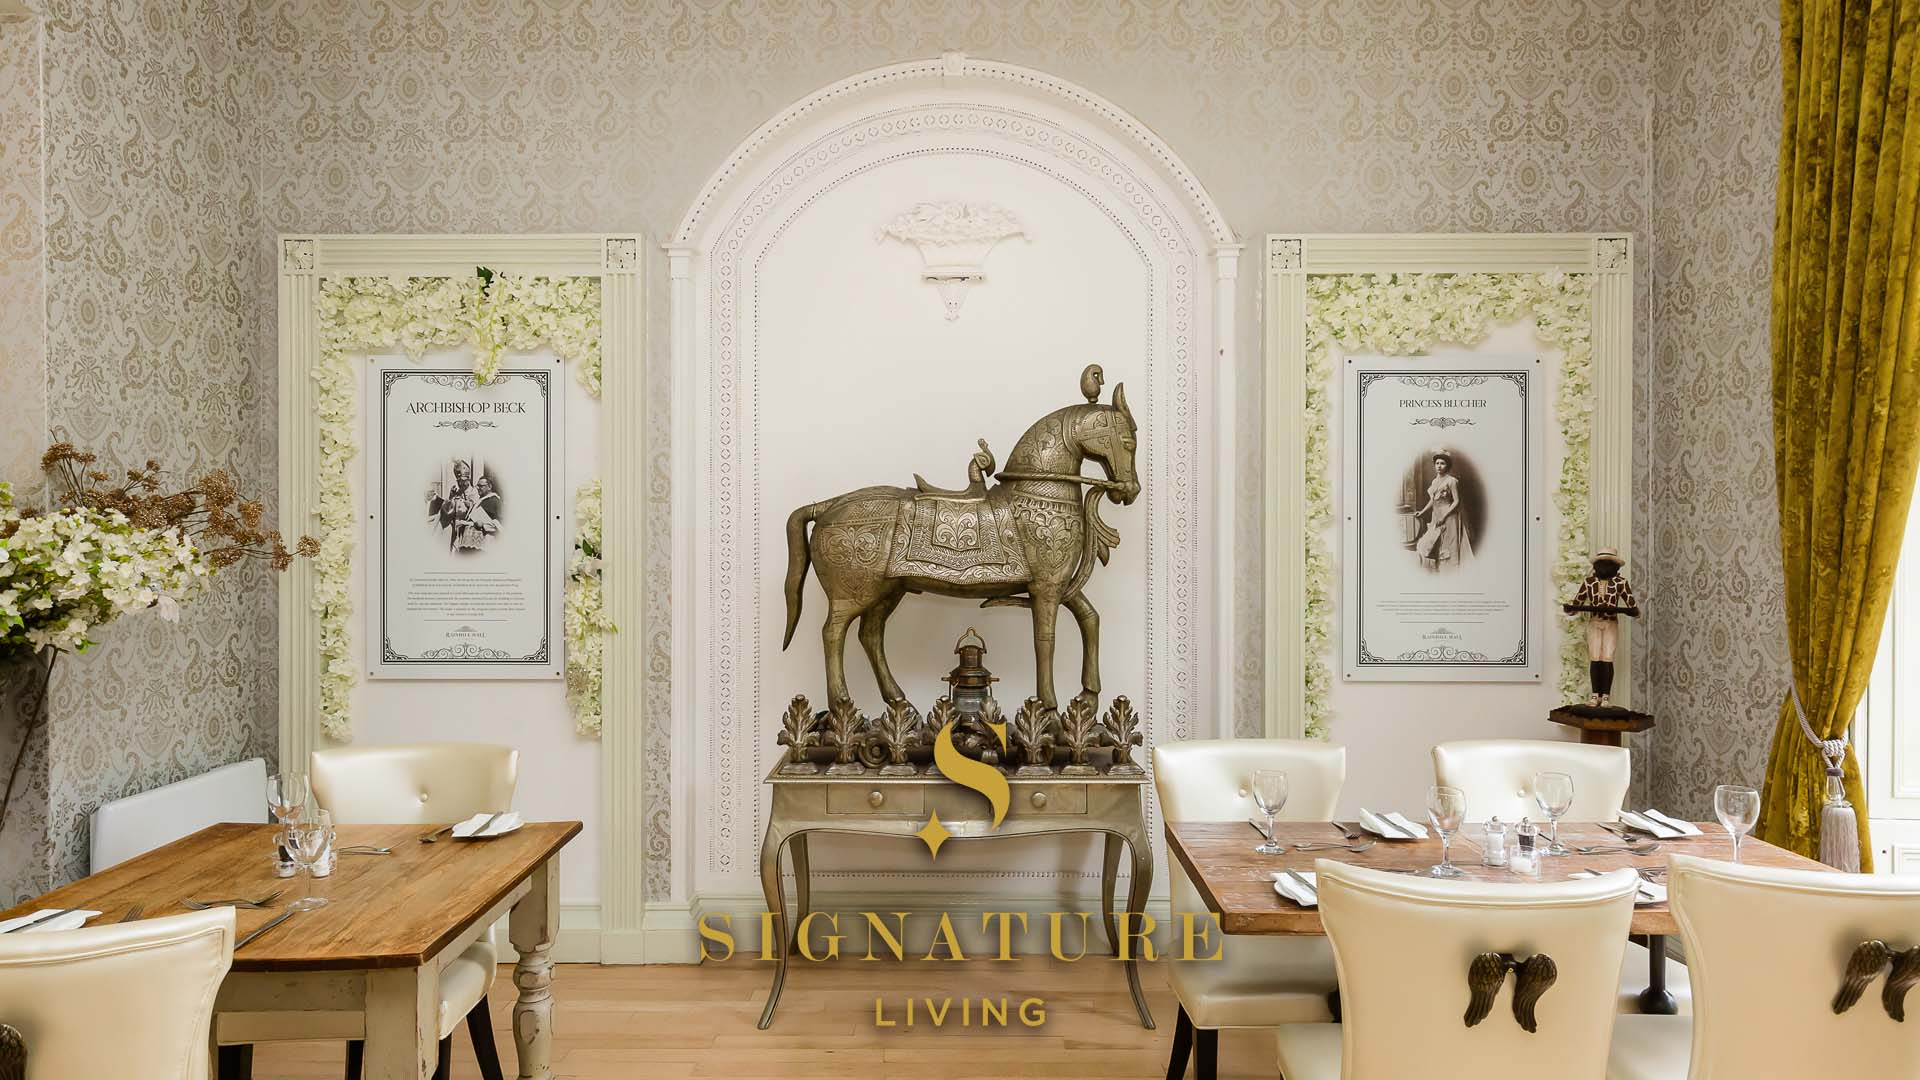 Rainhill Hall Labyrinth of Luxuries by Signature Living